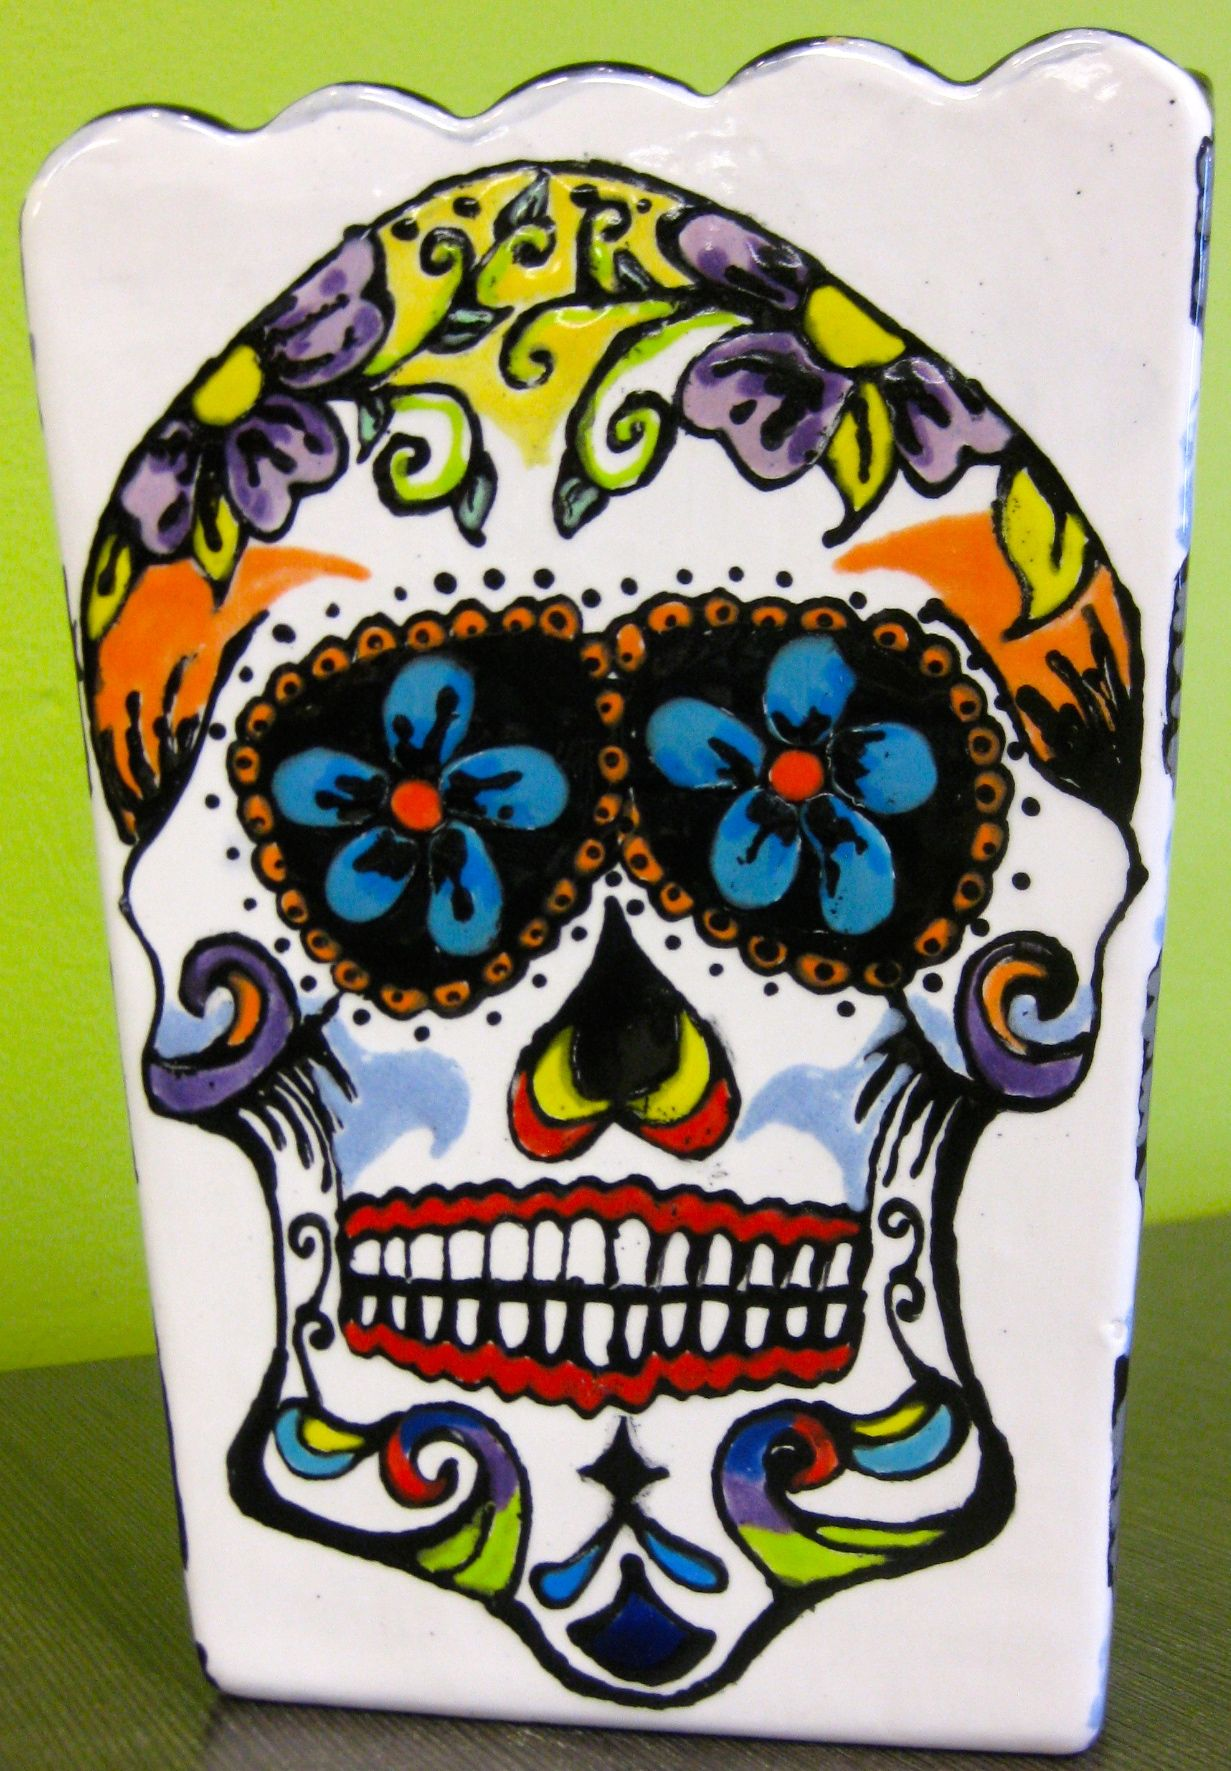 Sugar skull painted with fun writers at Art & Soul